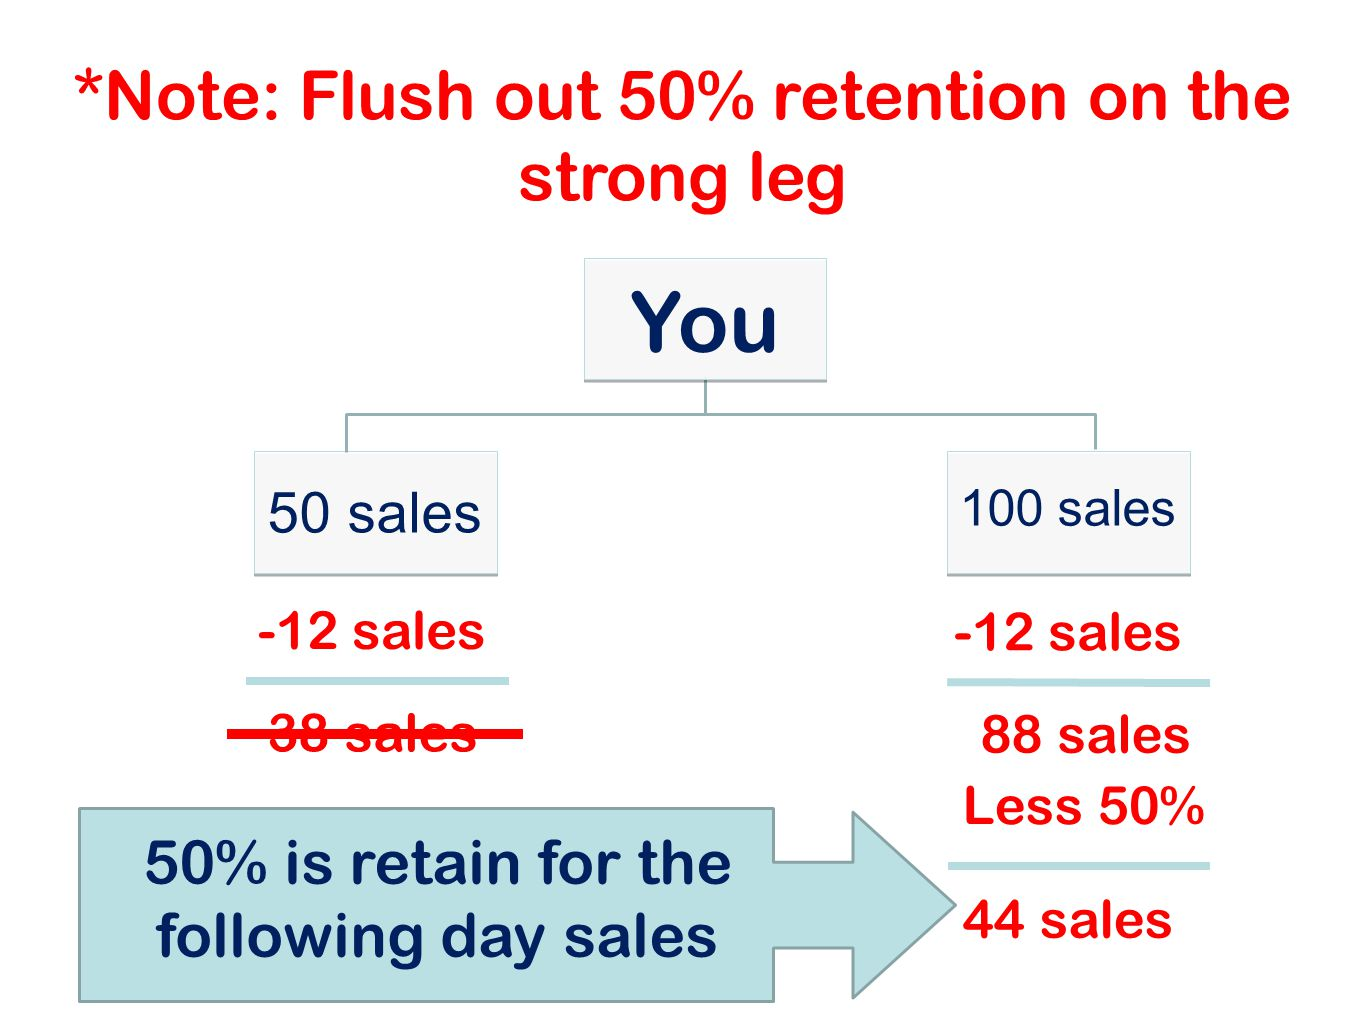 *Note: Flush out 50% retention on the strong leg 50 sales -12 sales 38 sales 88 sales Less 50% You 44 sales 50% is retain for the following day sales